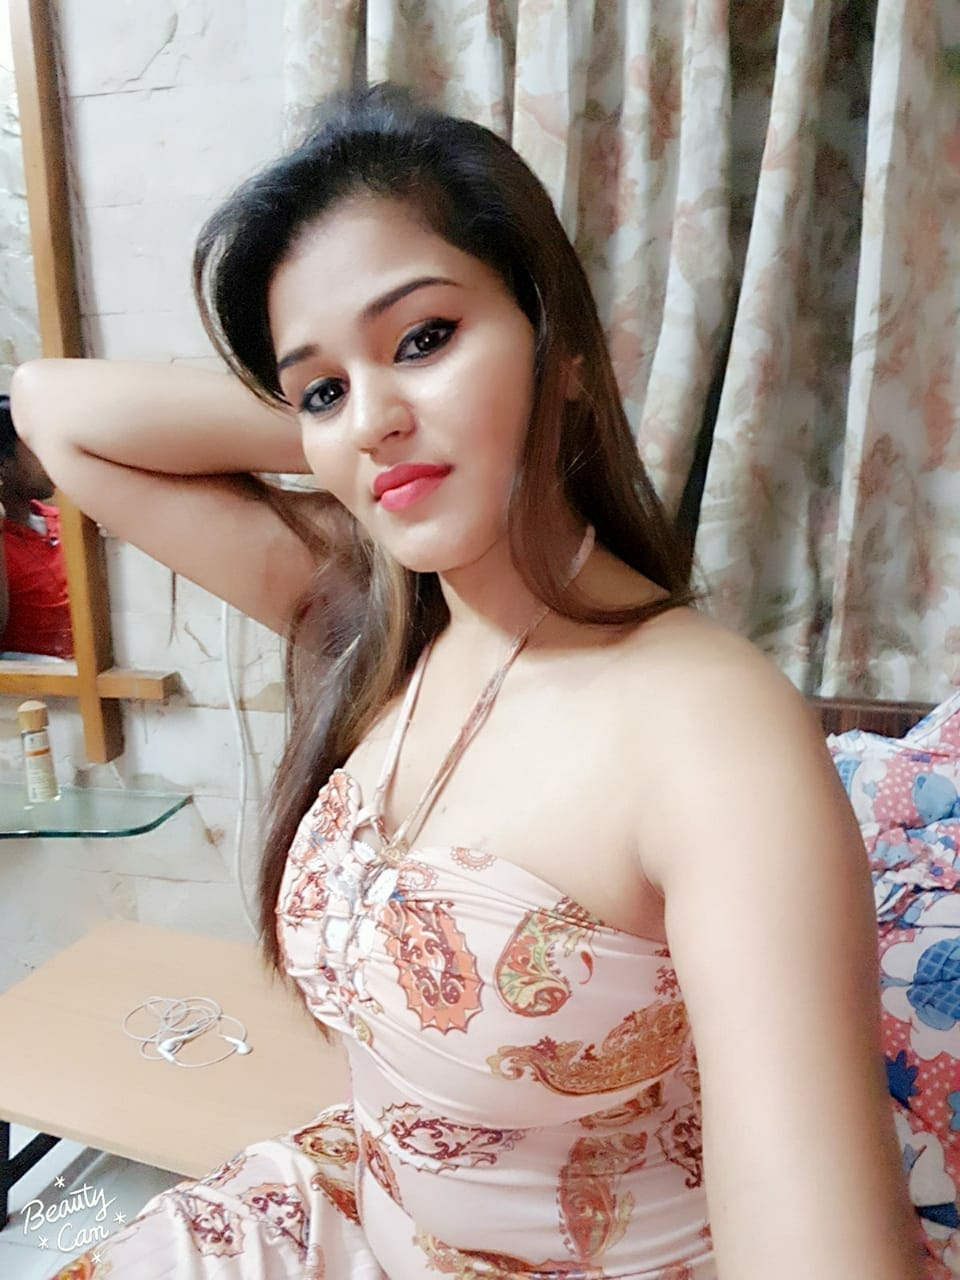 High Profile Escorts In  in bhiwandi